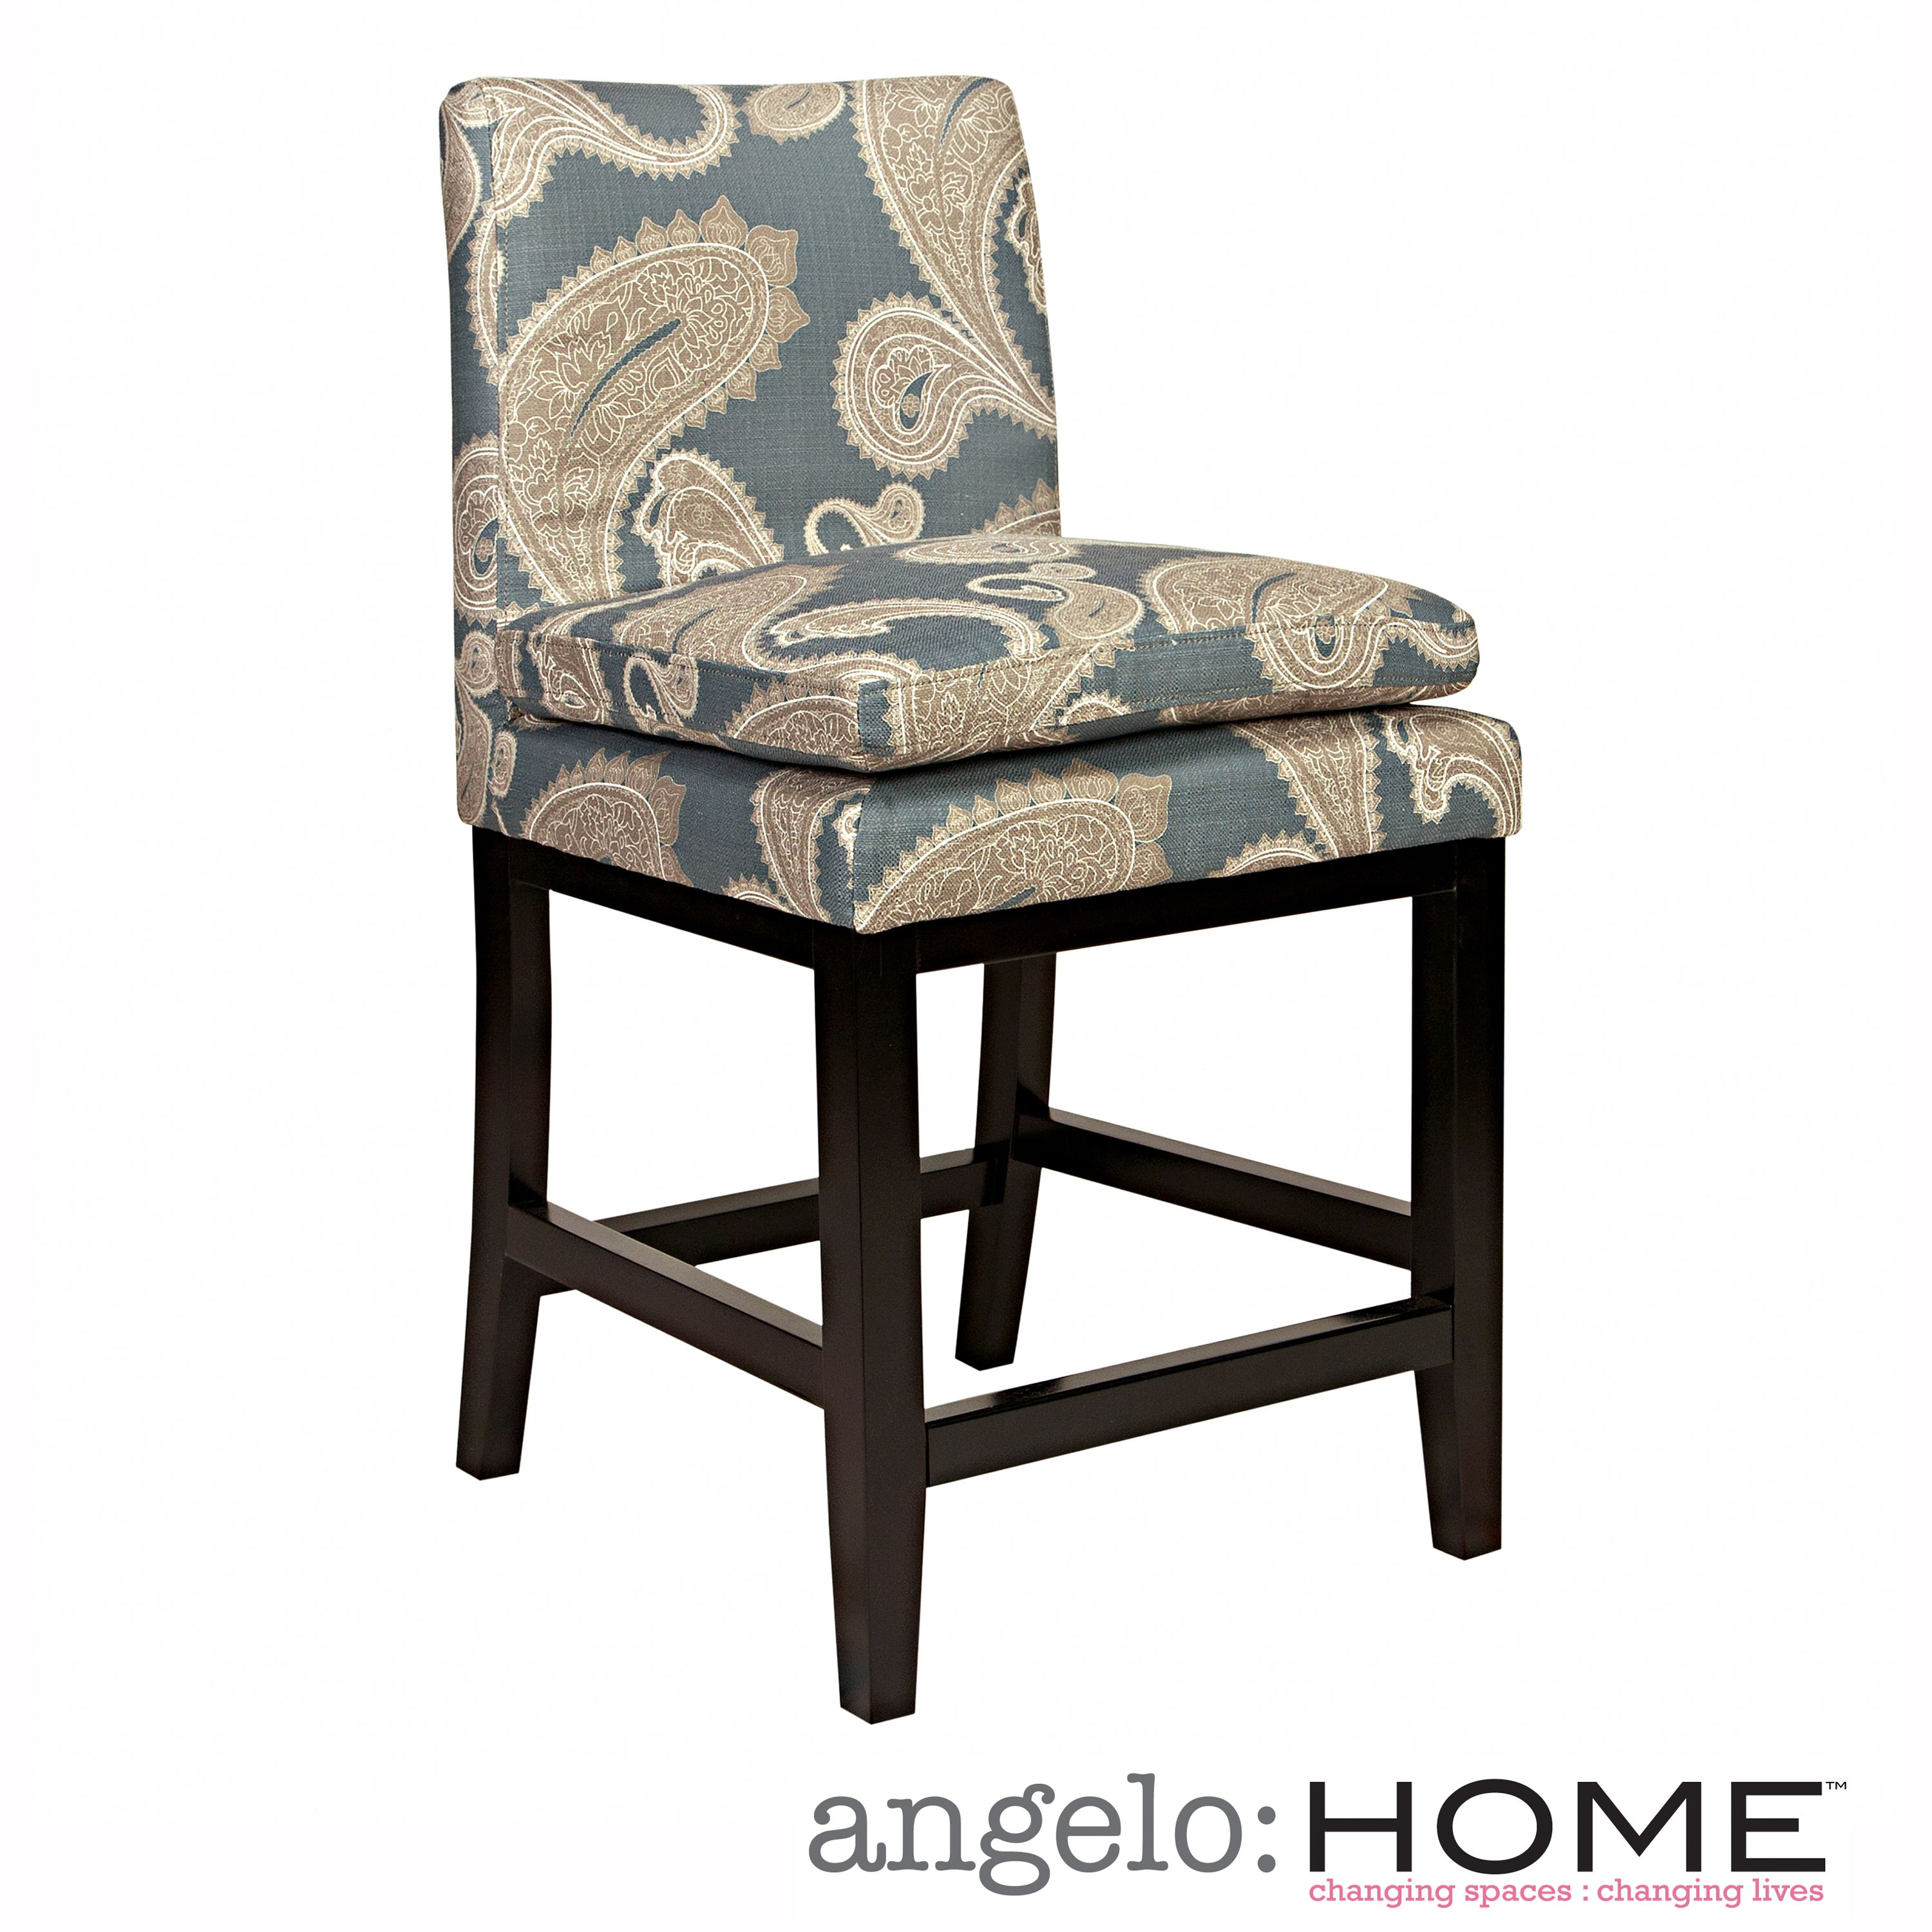 The Angelohome Marnie 23 Inch Barstool Was Designed By Angelo